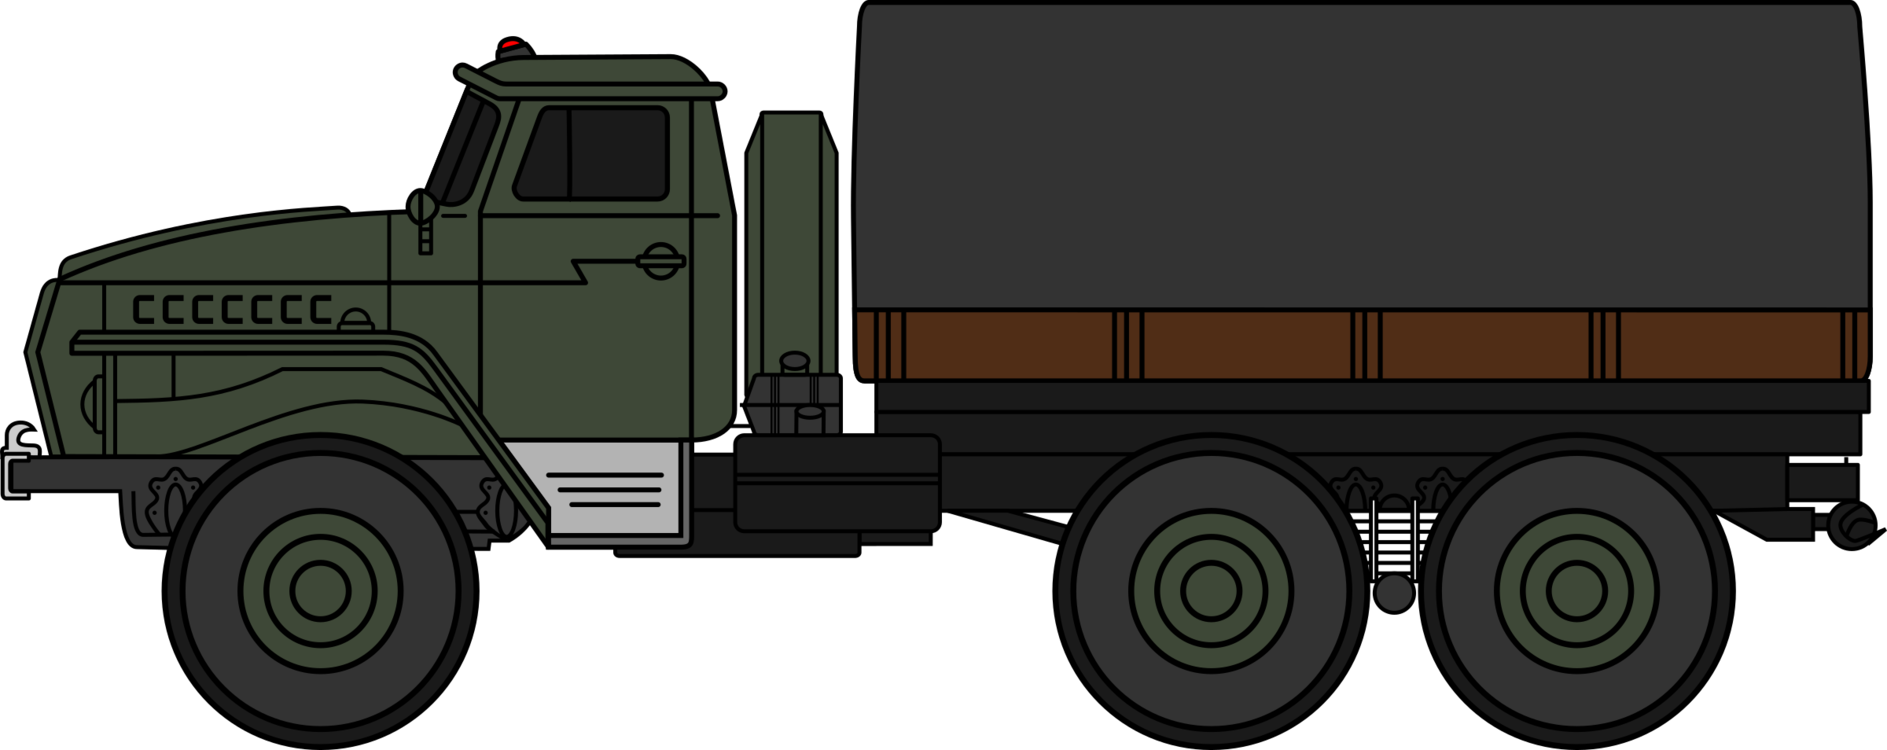 Truck clipart soldier. Ural car military vehicle